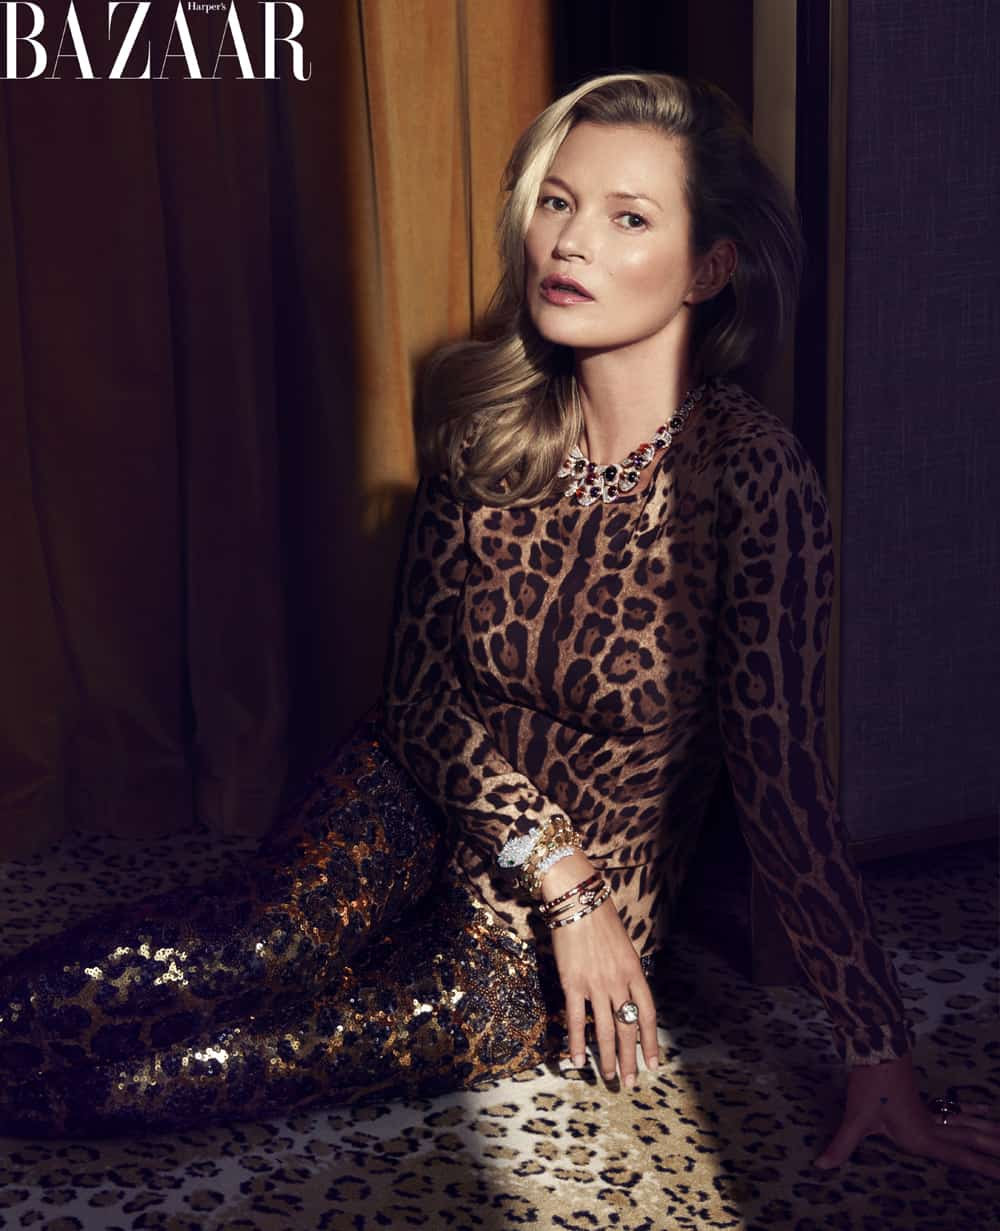 Kate Moss Gets Beauty Advice From Her 16-Year-Old Daughter